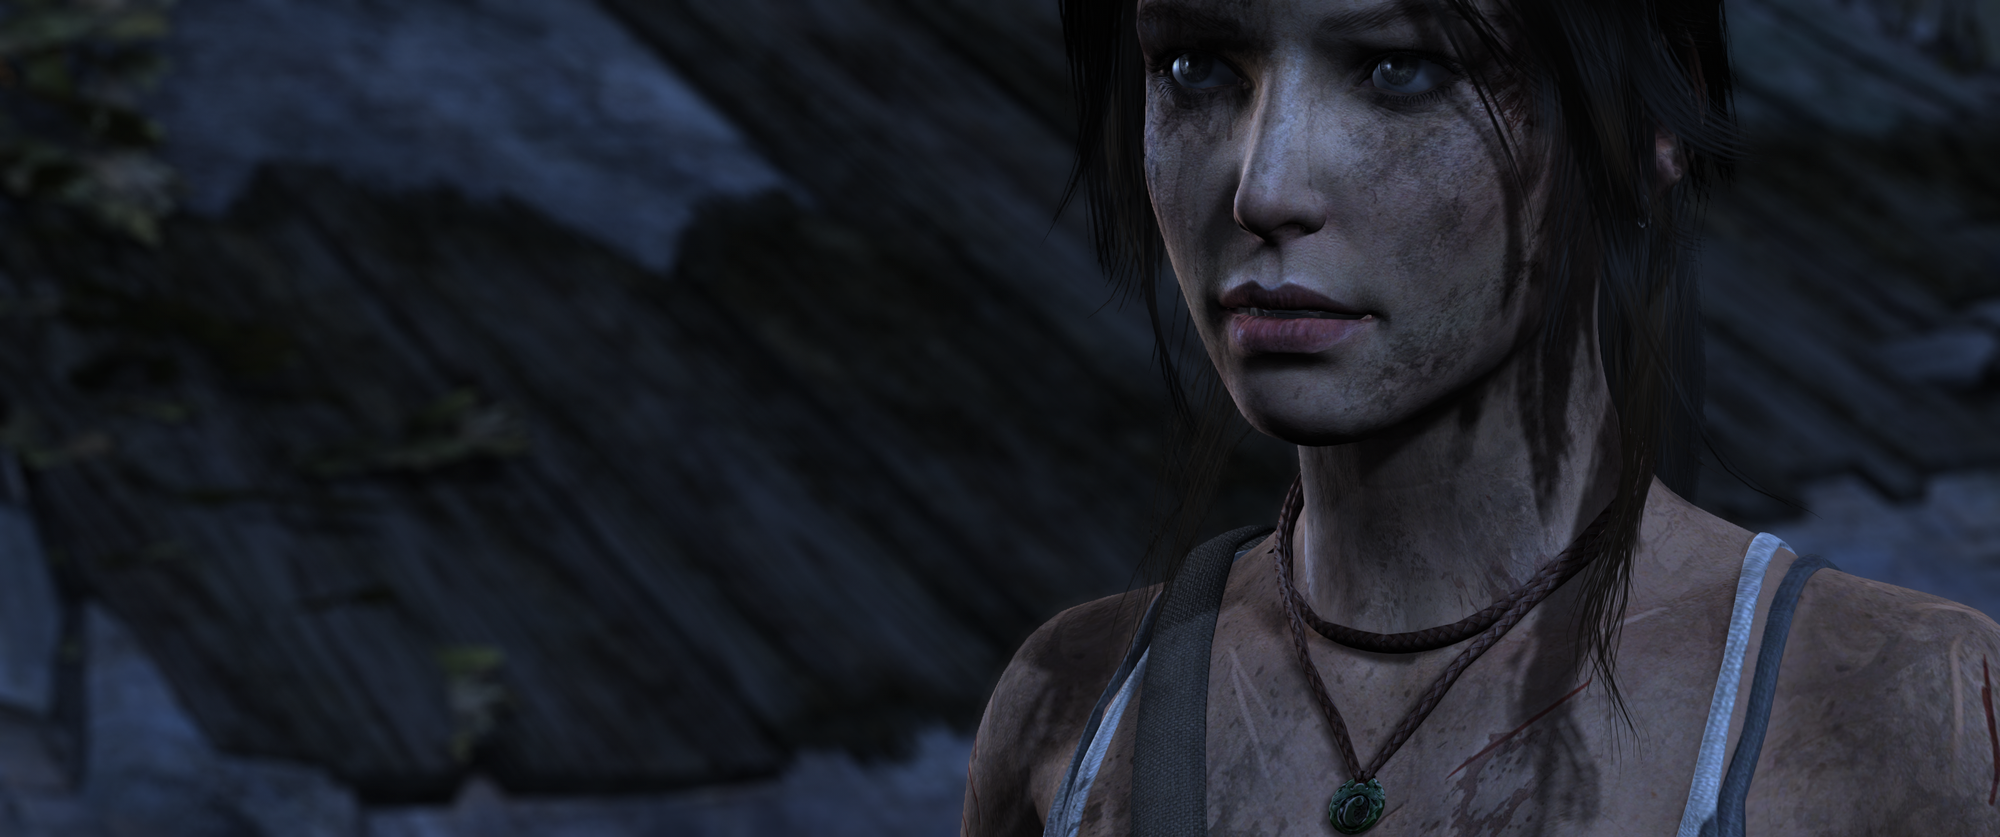 TombRaider_2018_07_25_18_25_24_857.png